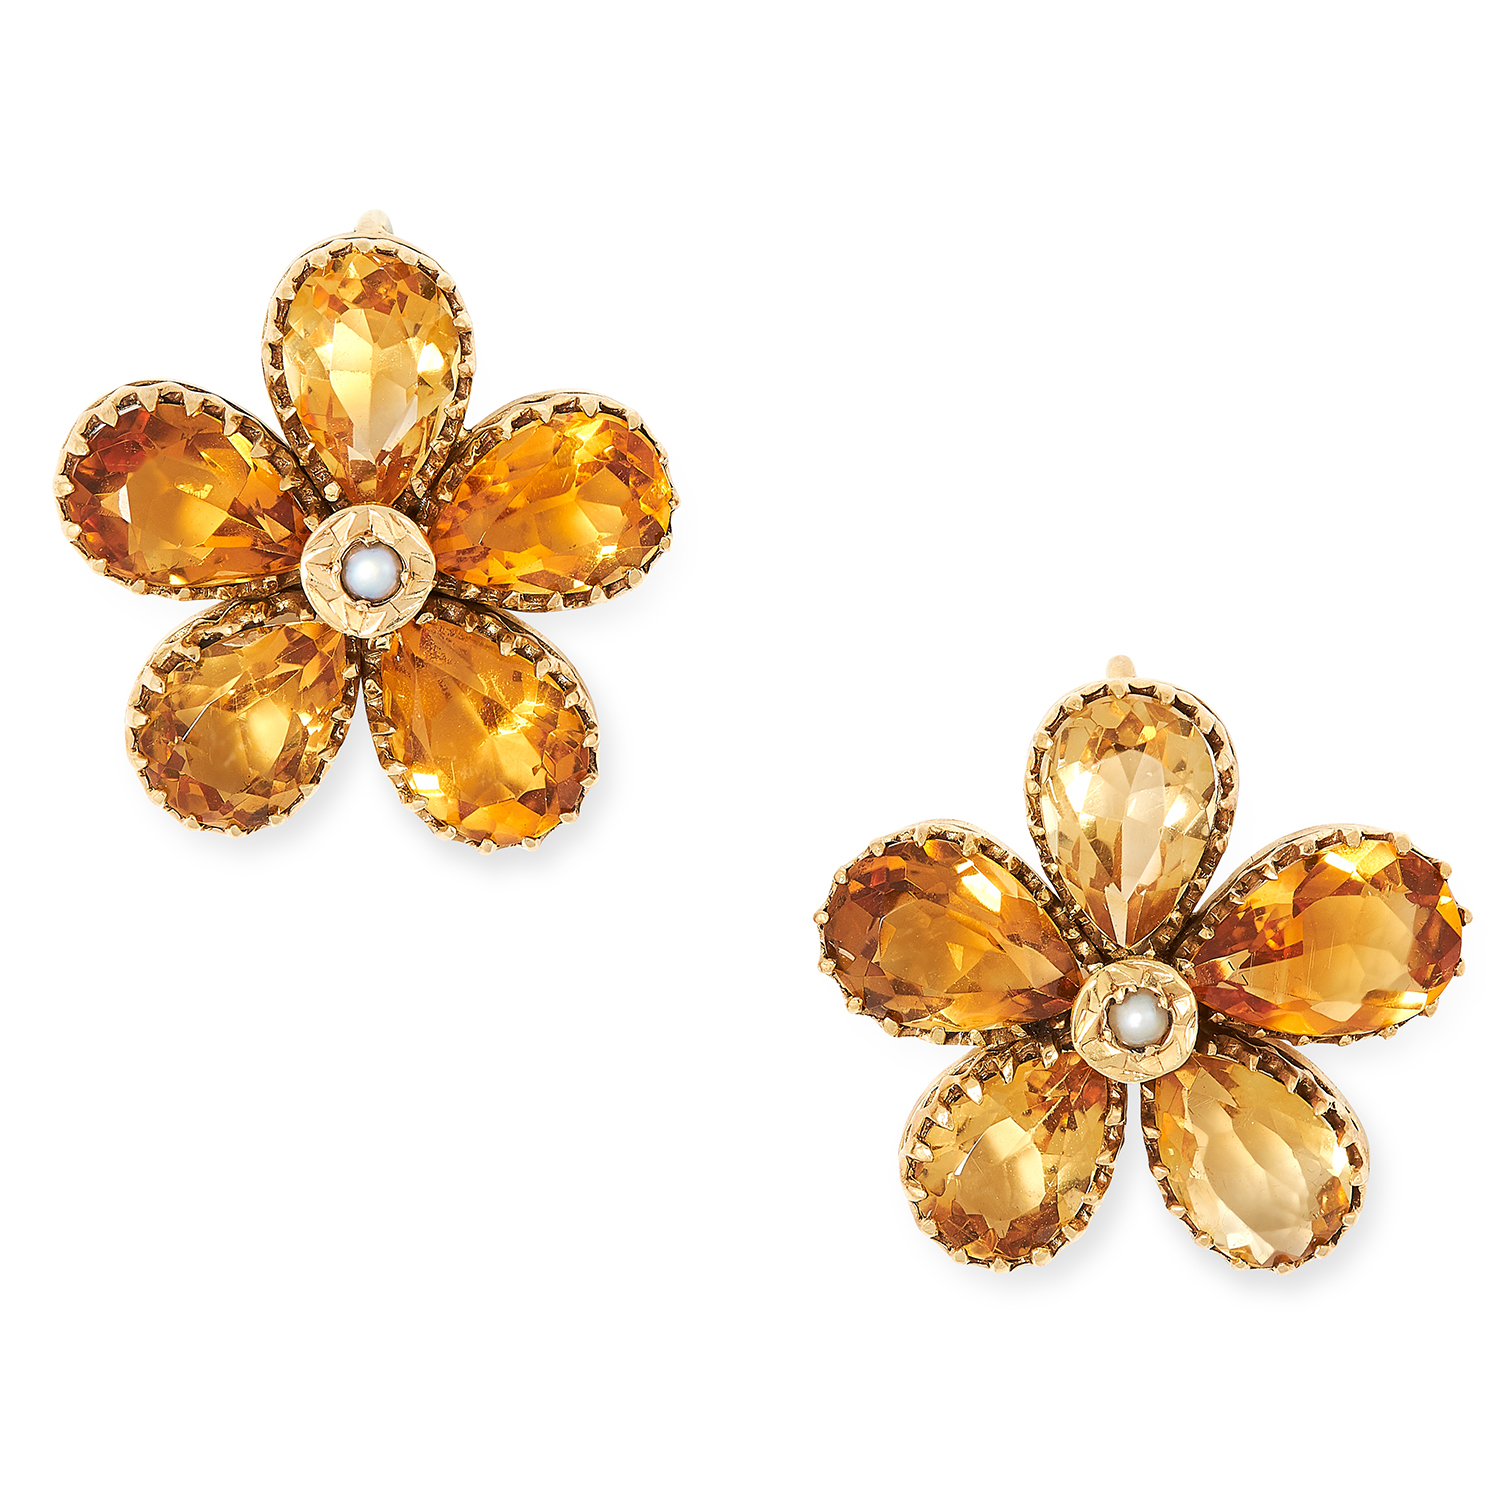 CITRINE AND PEARL FLOWER EARRINGS each set with a pearl in a border of pear cut citrine, 2cm, 6g.